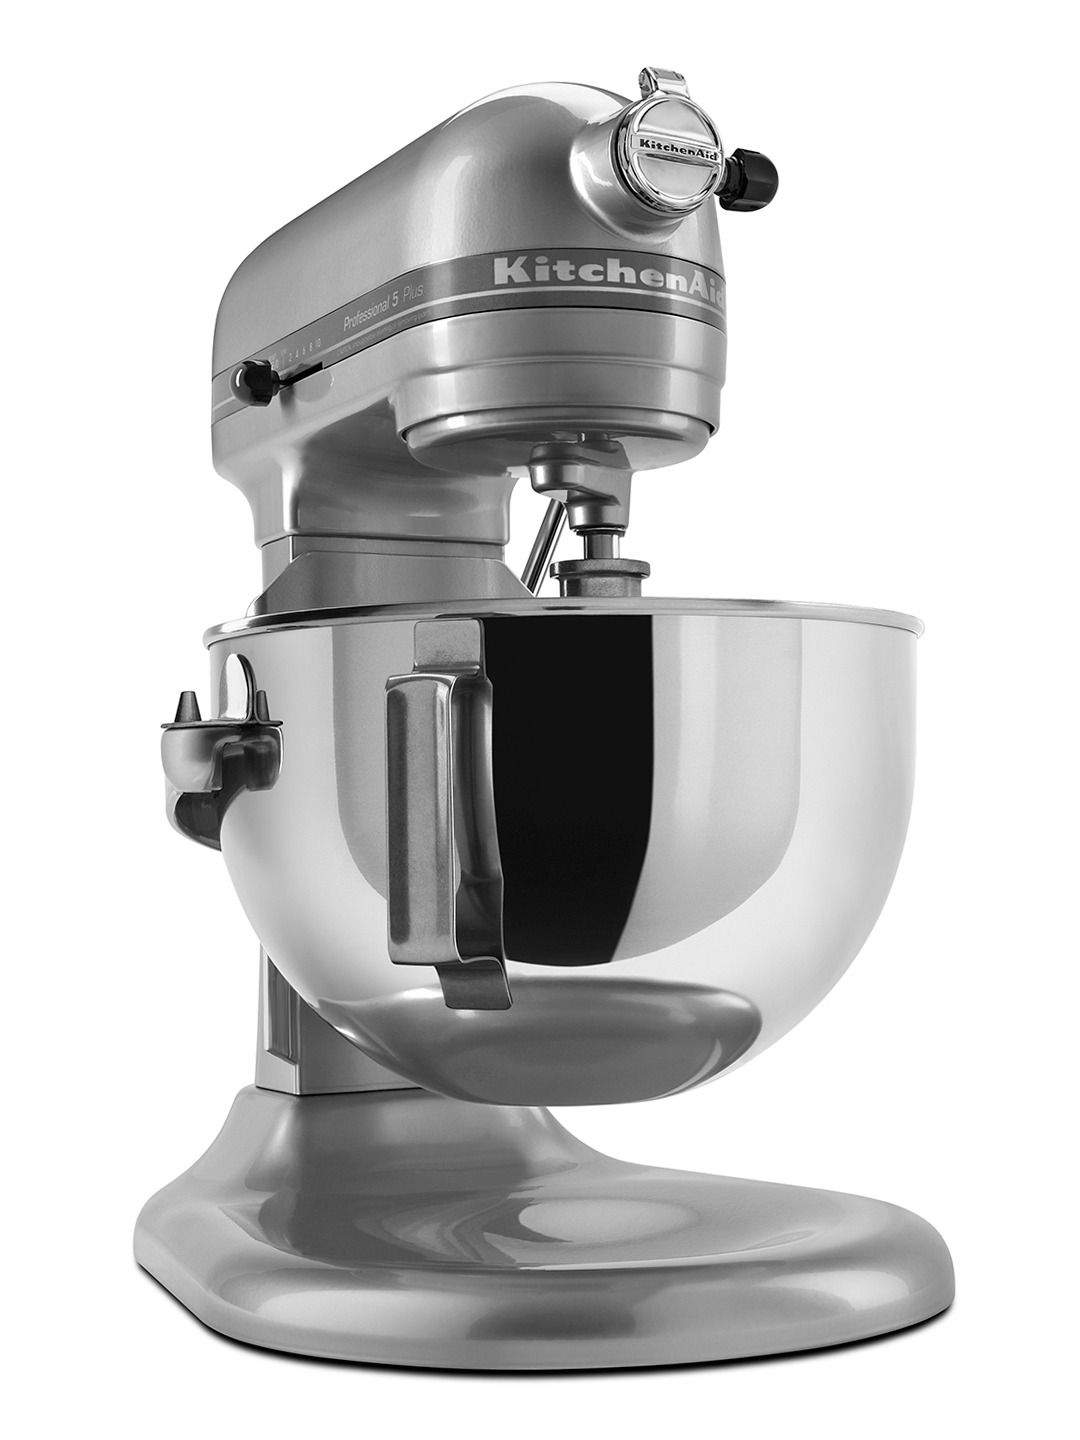 279 Good Price For A Kitchenaid On Gilt Right Now 5 Quart Professional 5 Plus Standard Mixer By Kitche With Images Kitchen Aid Kitchen Aid Mixer Kitchenaid Professional